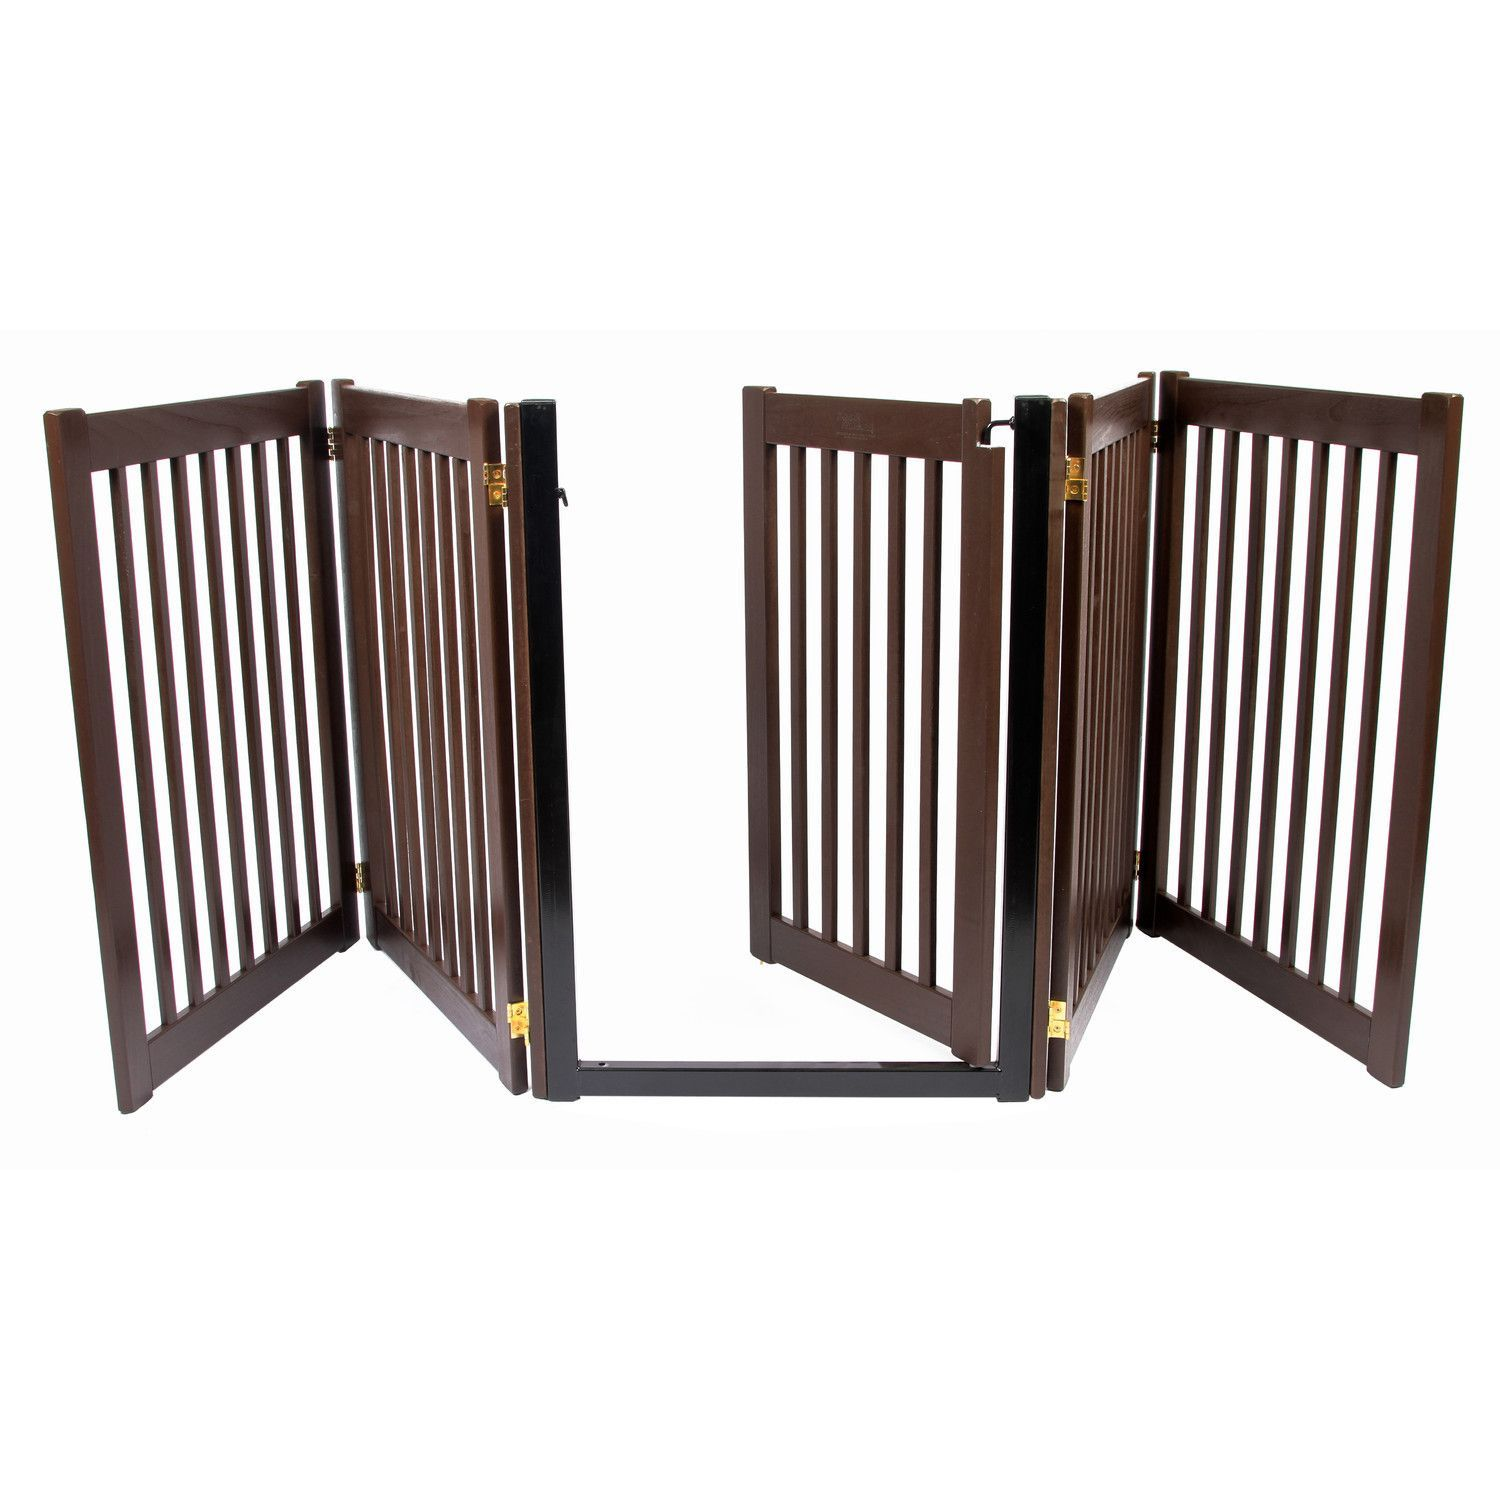 Amish Handcrafted 5 Panel Accordion Pet Gate In 2019 Pet